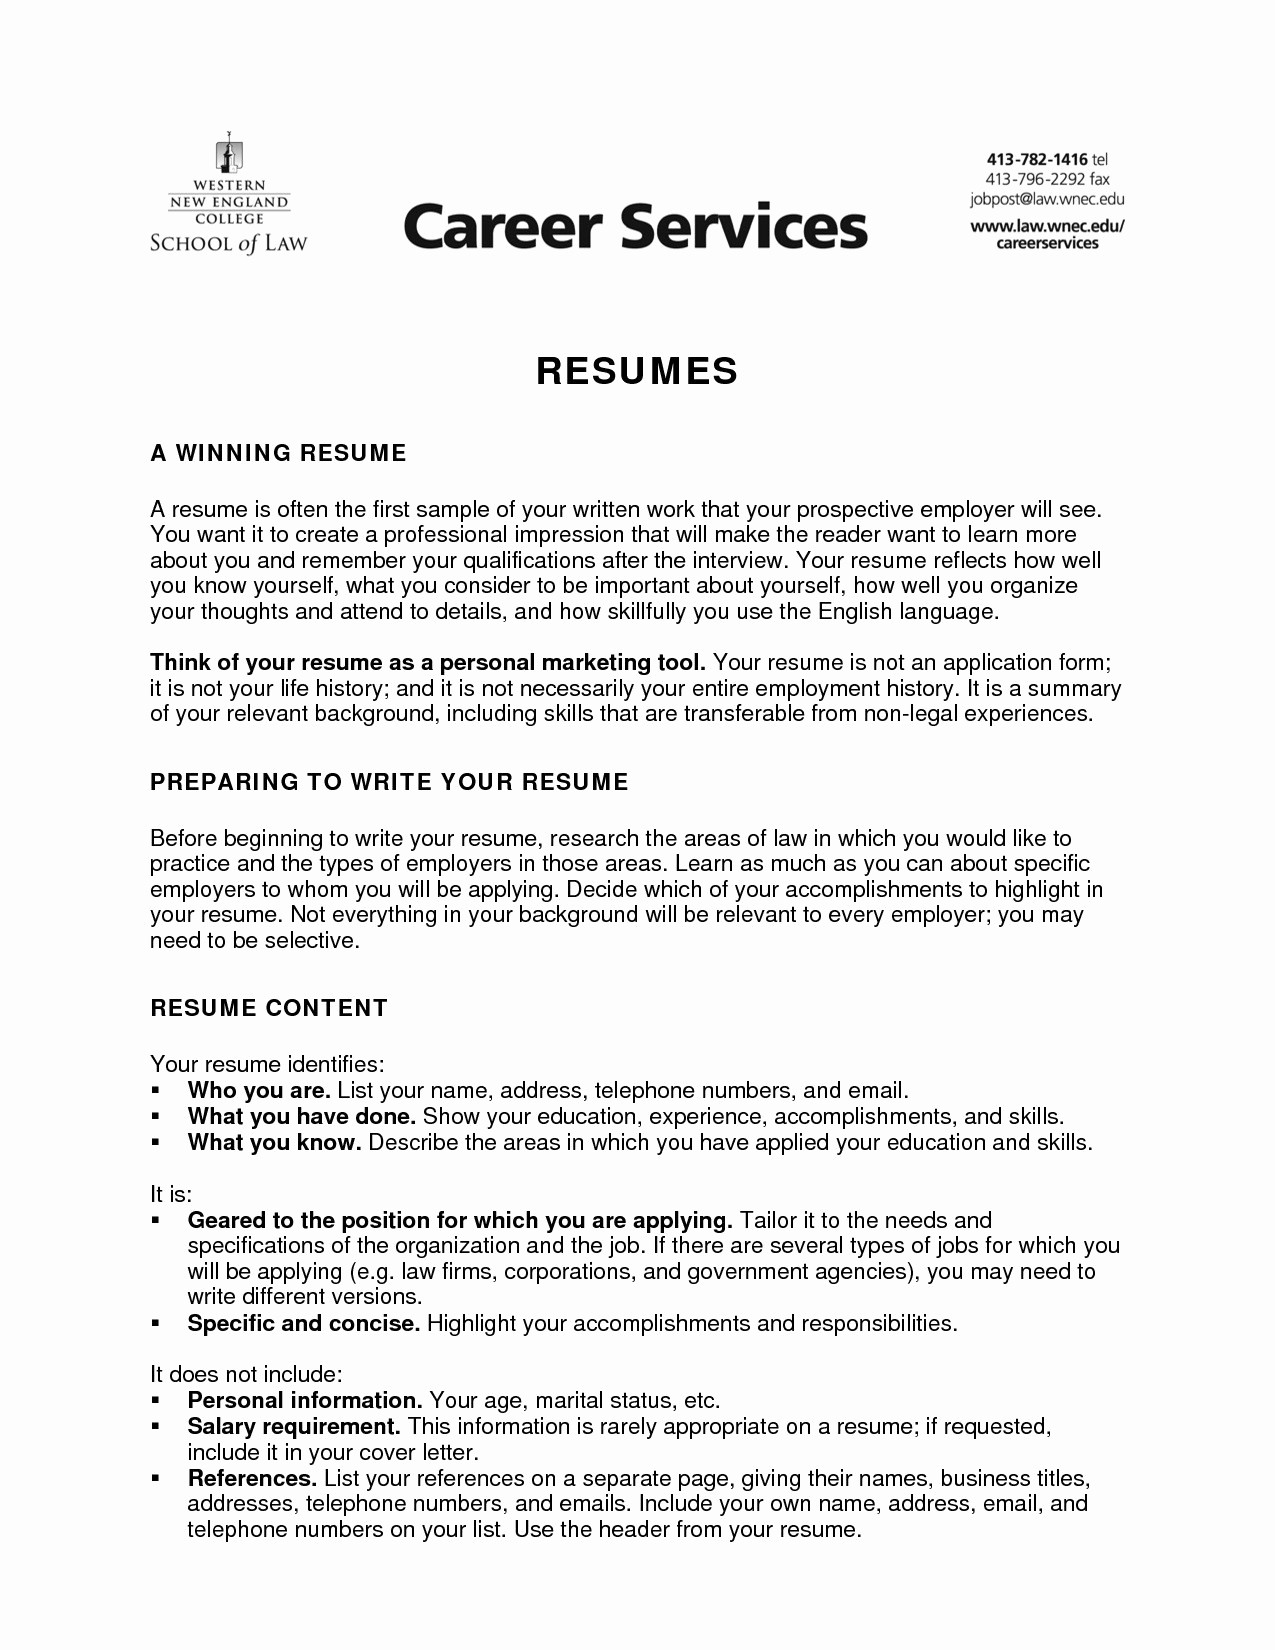 Resumes for New College Graduates Beautiful College Graduate Resume Objective Eezee Merce